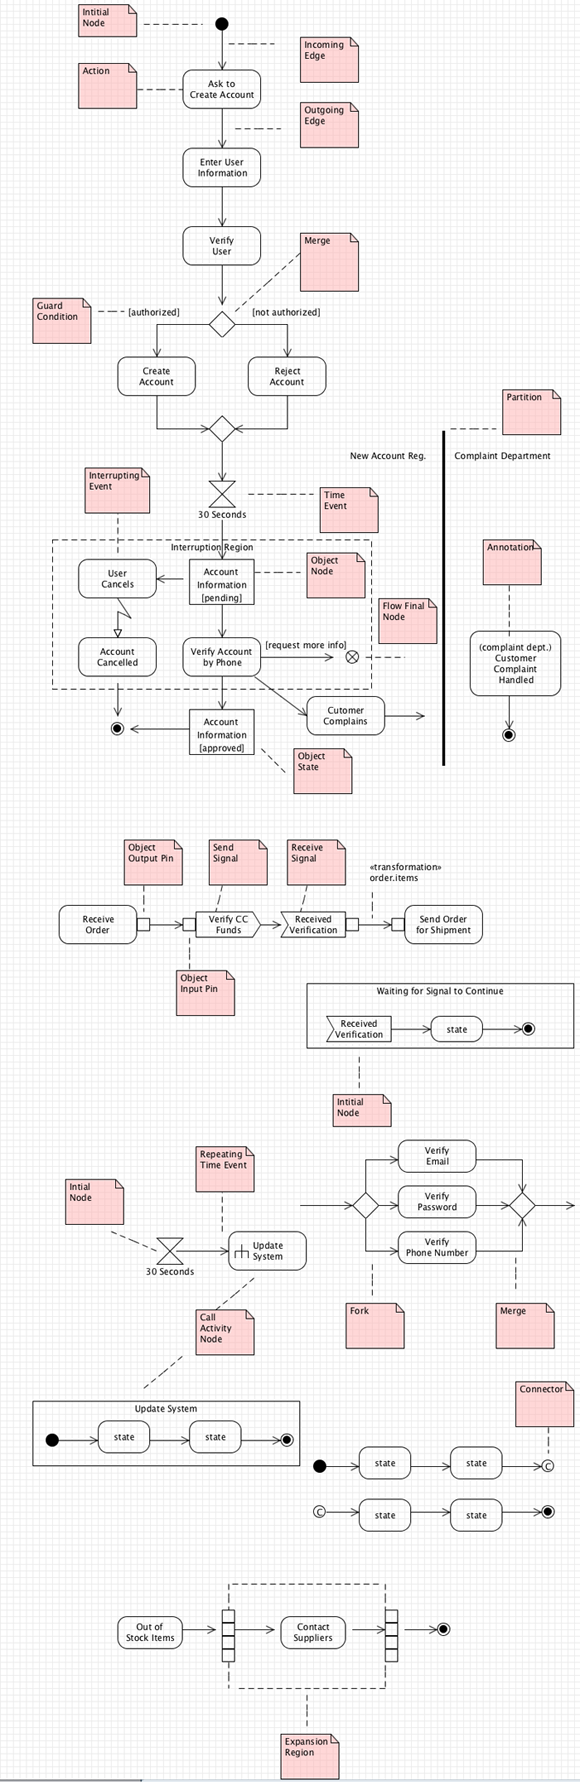 UML-Activity-Diagram